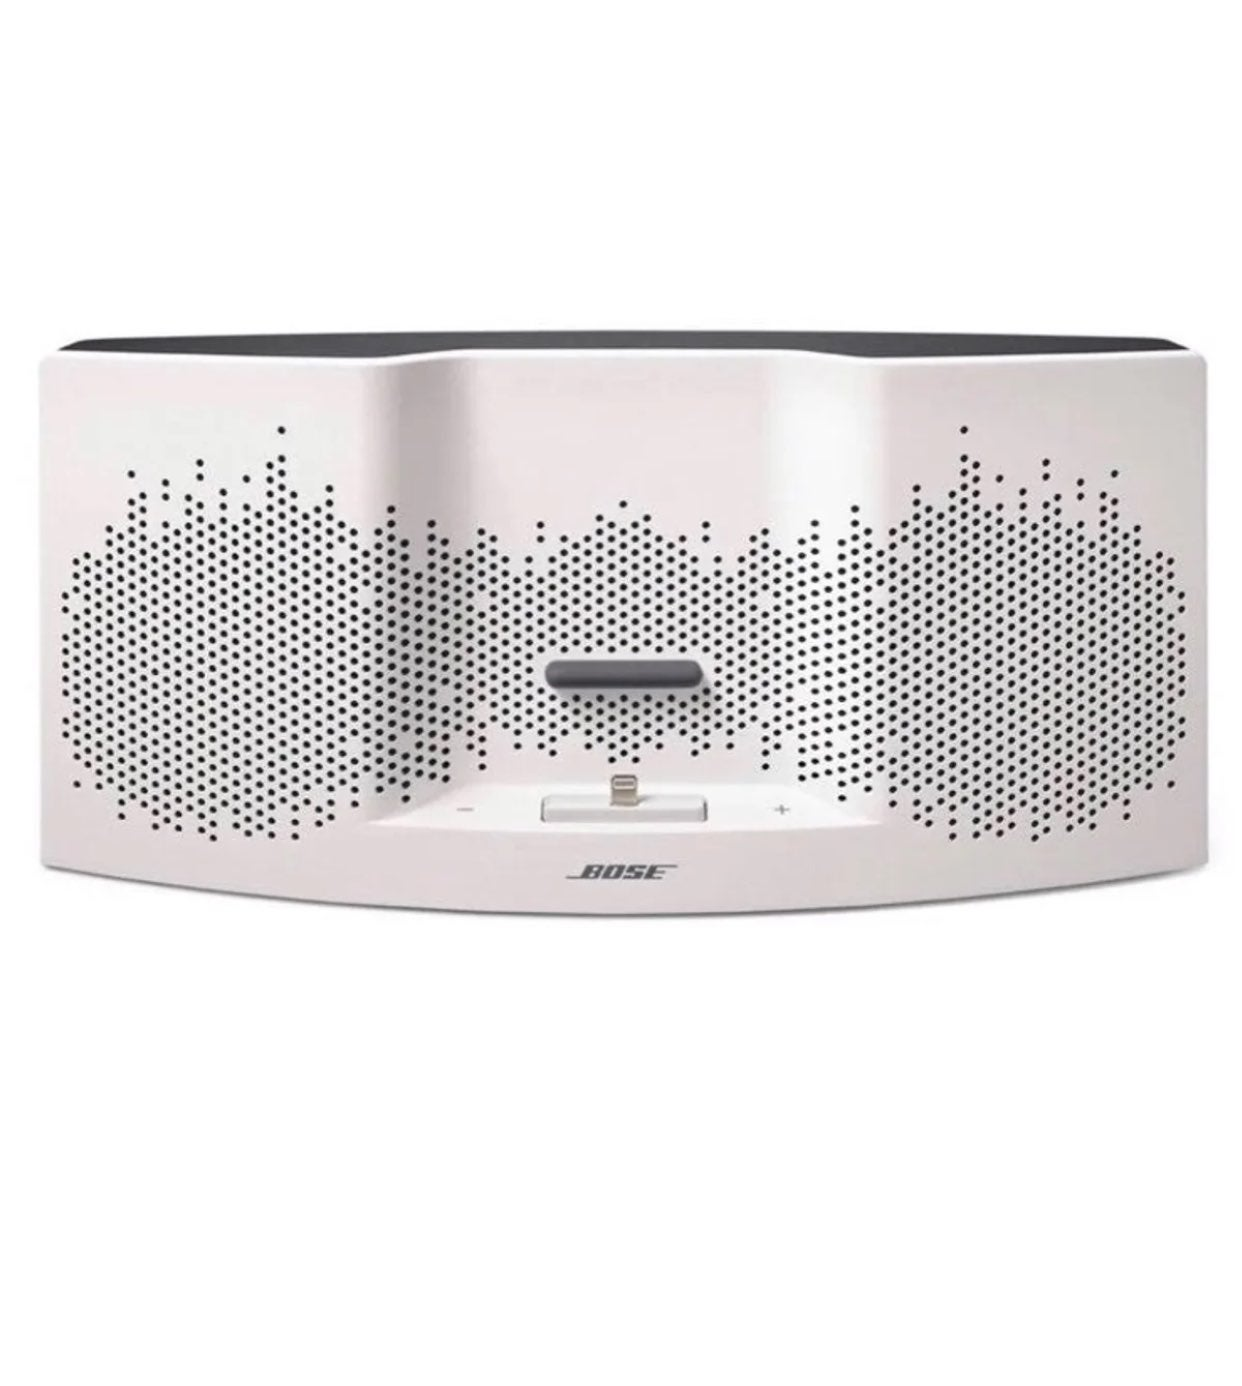 Bose Sounddock Xt Speaker never been use